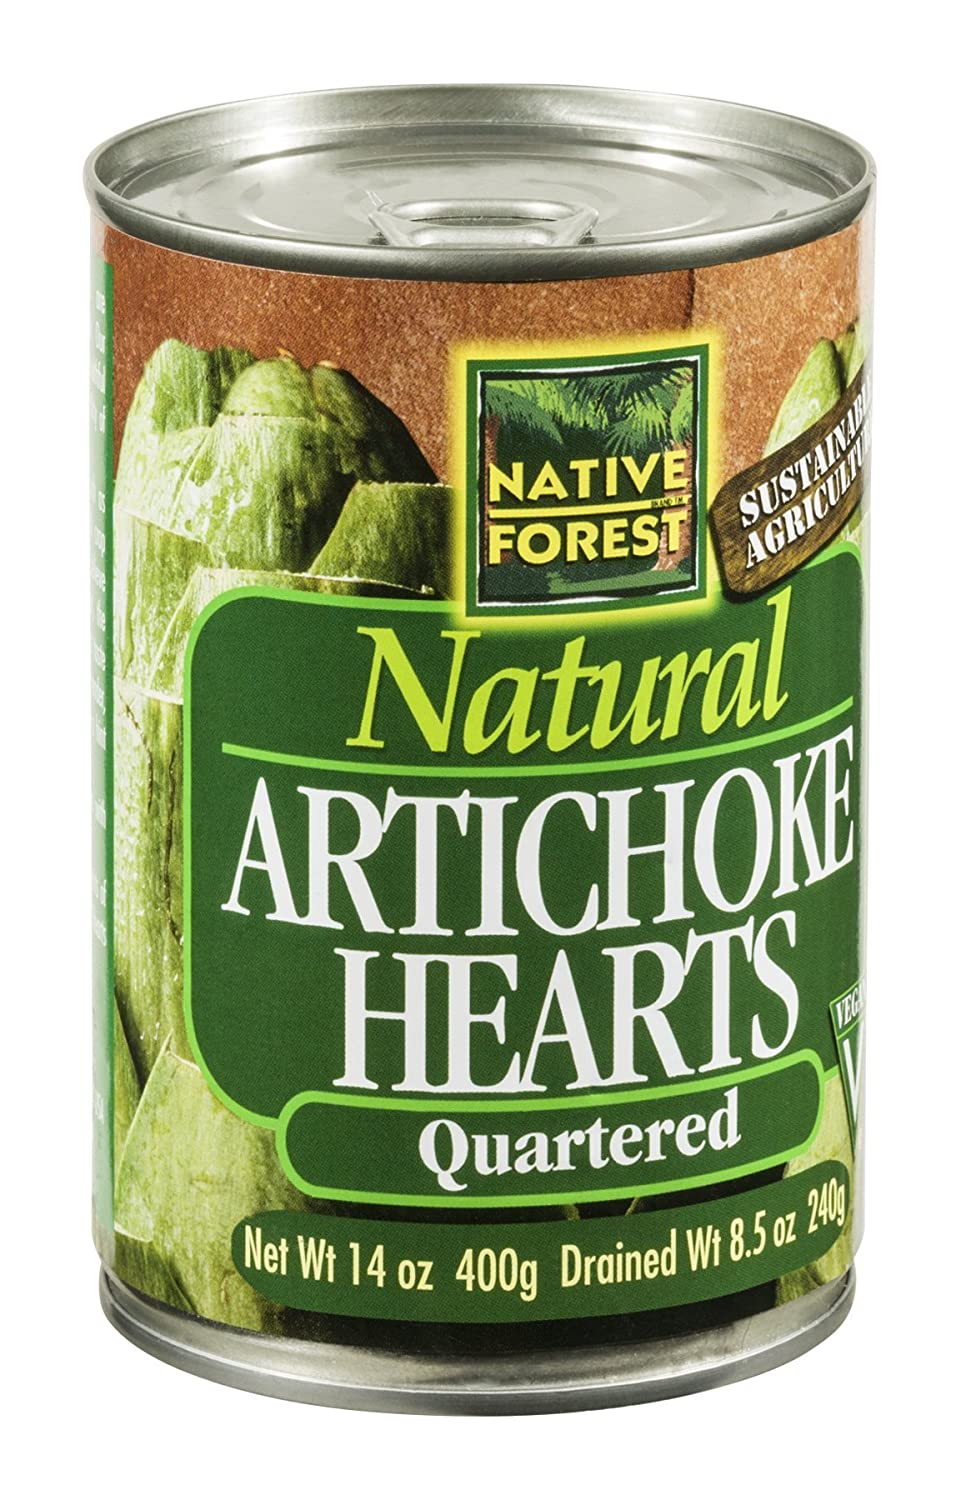 Native Forest Artichoke Hearts, Quartered, 14-Ounce Cans (Pack of 6) ( Value Bulk Multi-pack) mycofloral study of pinus forest of samahni azad kashmir pakistan